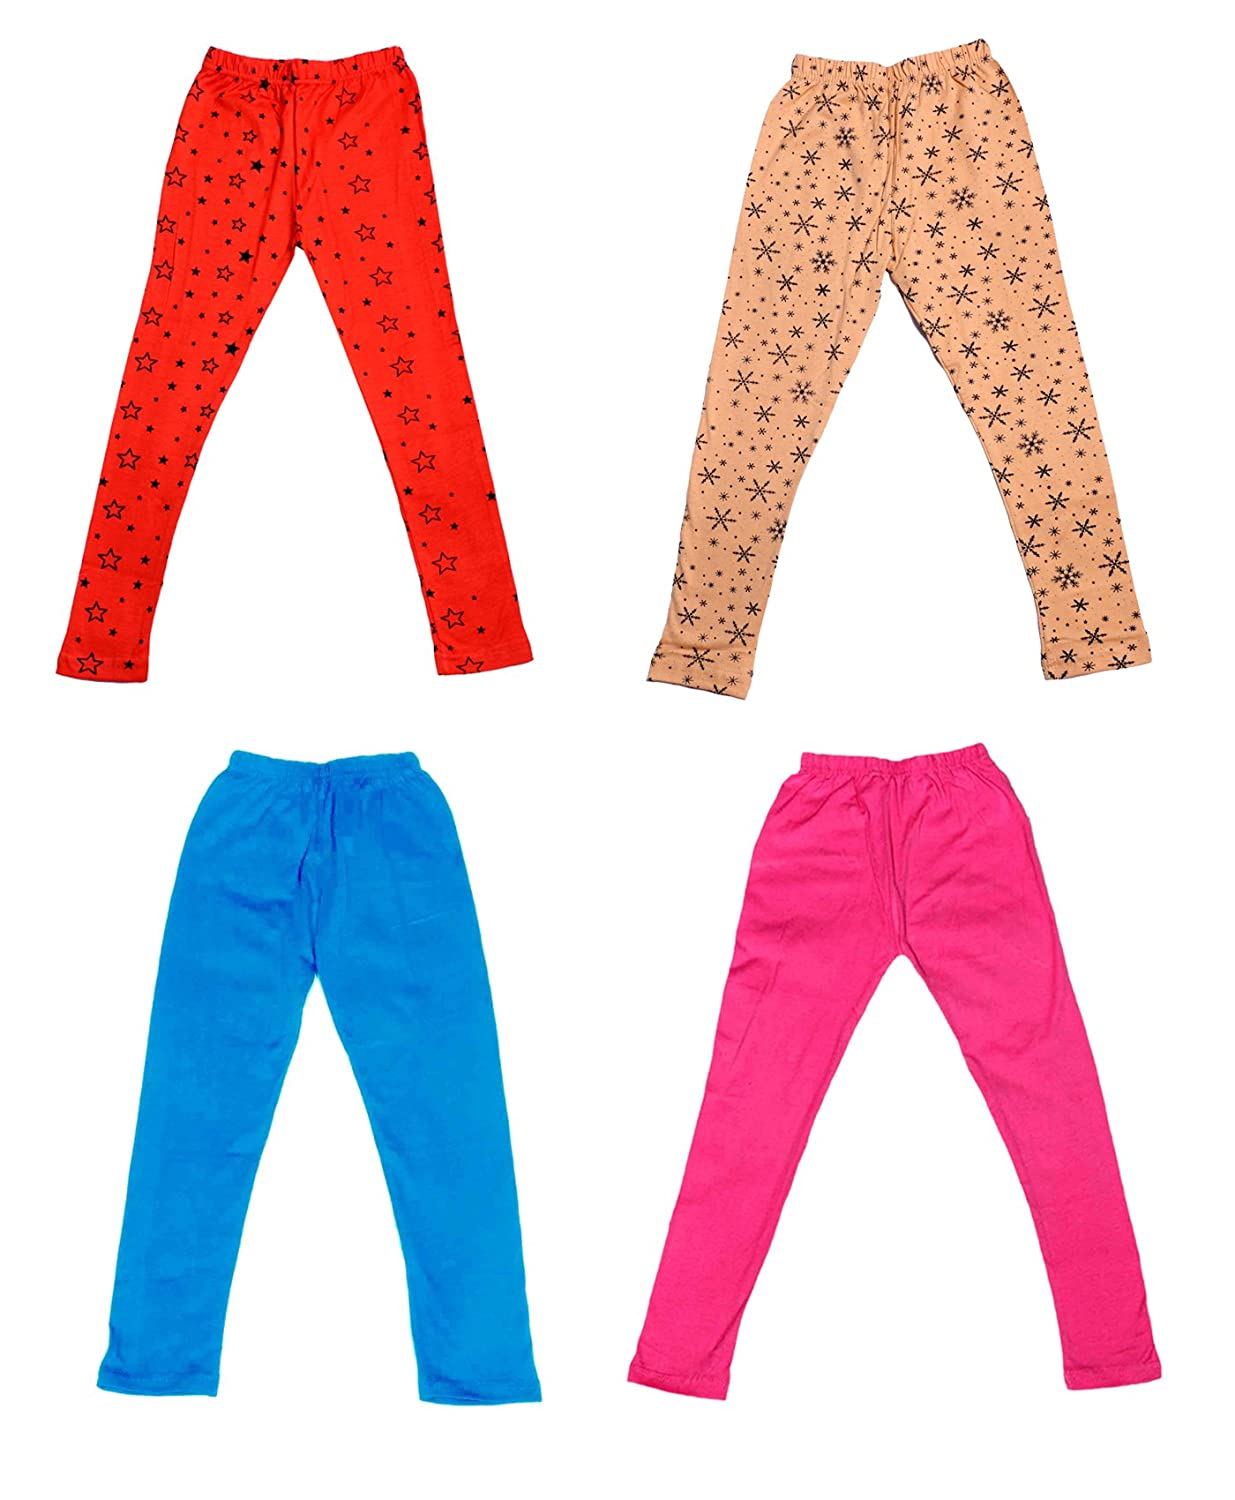 and 2 Cotton Printed Legging Pants Indistar Girls 2 Cotton Solid Legging Pants /_Multicolor/_Size-4-5 Years/_71411121619-IW-P4-26 Pack Of 4